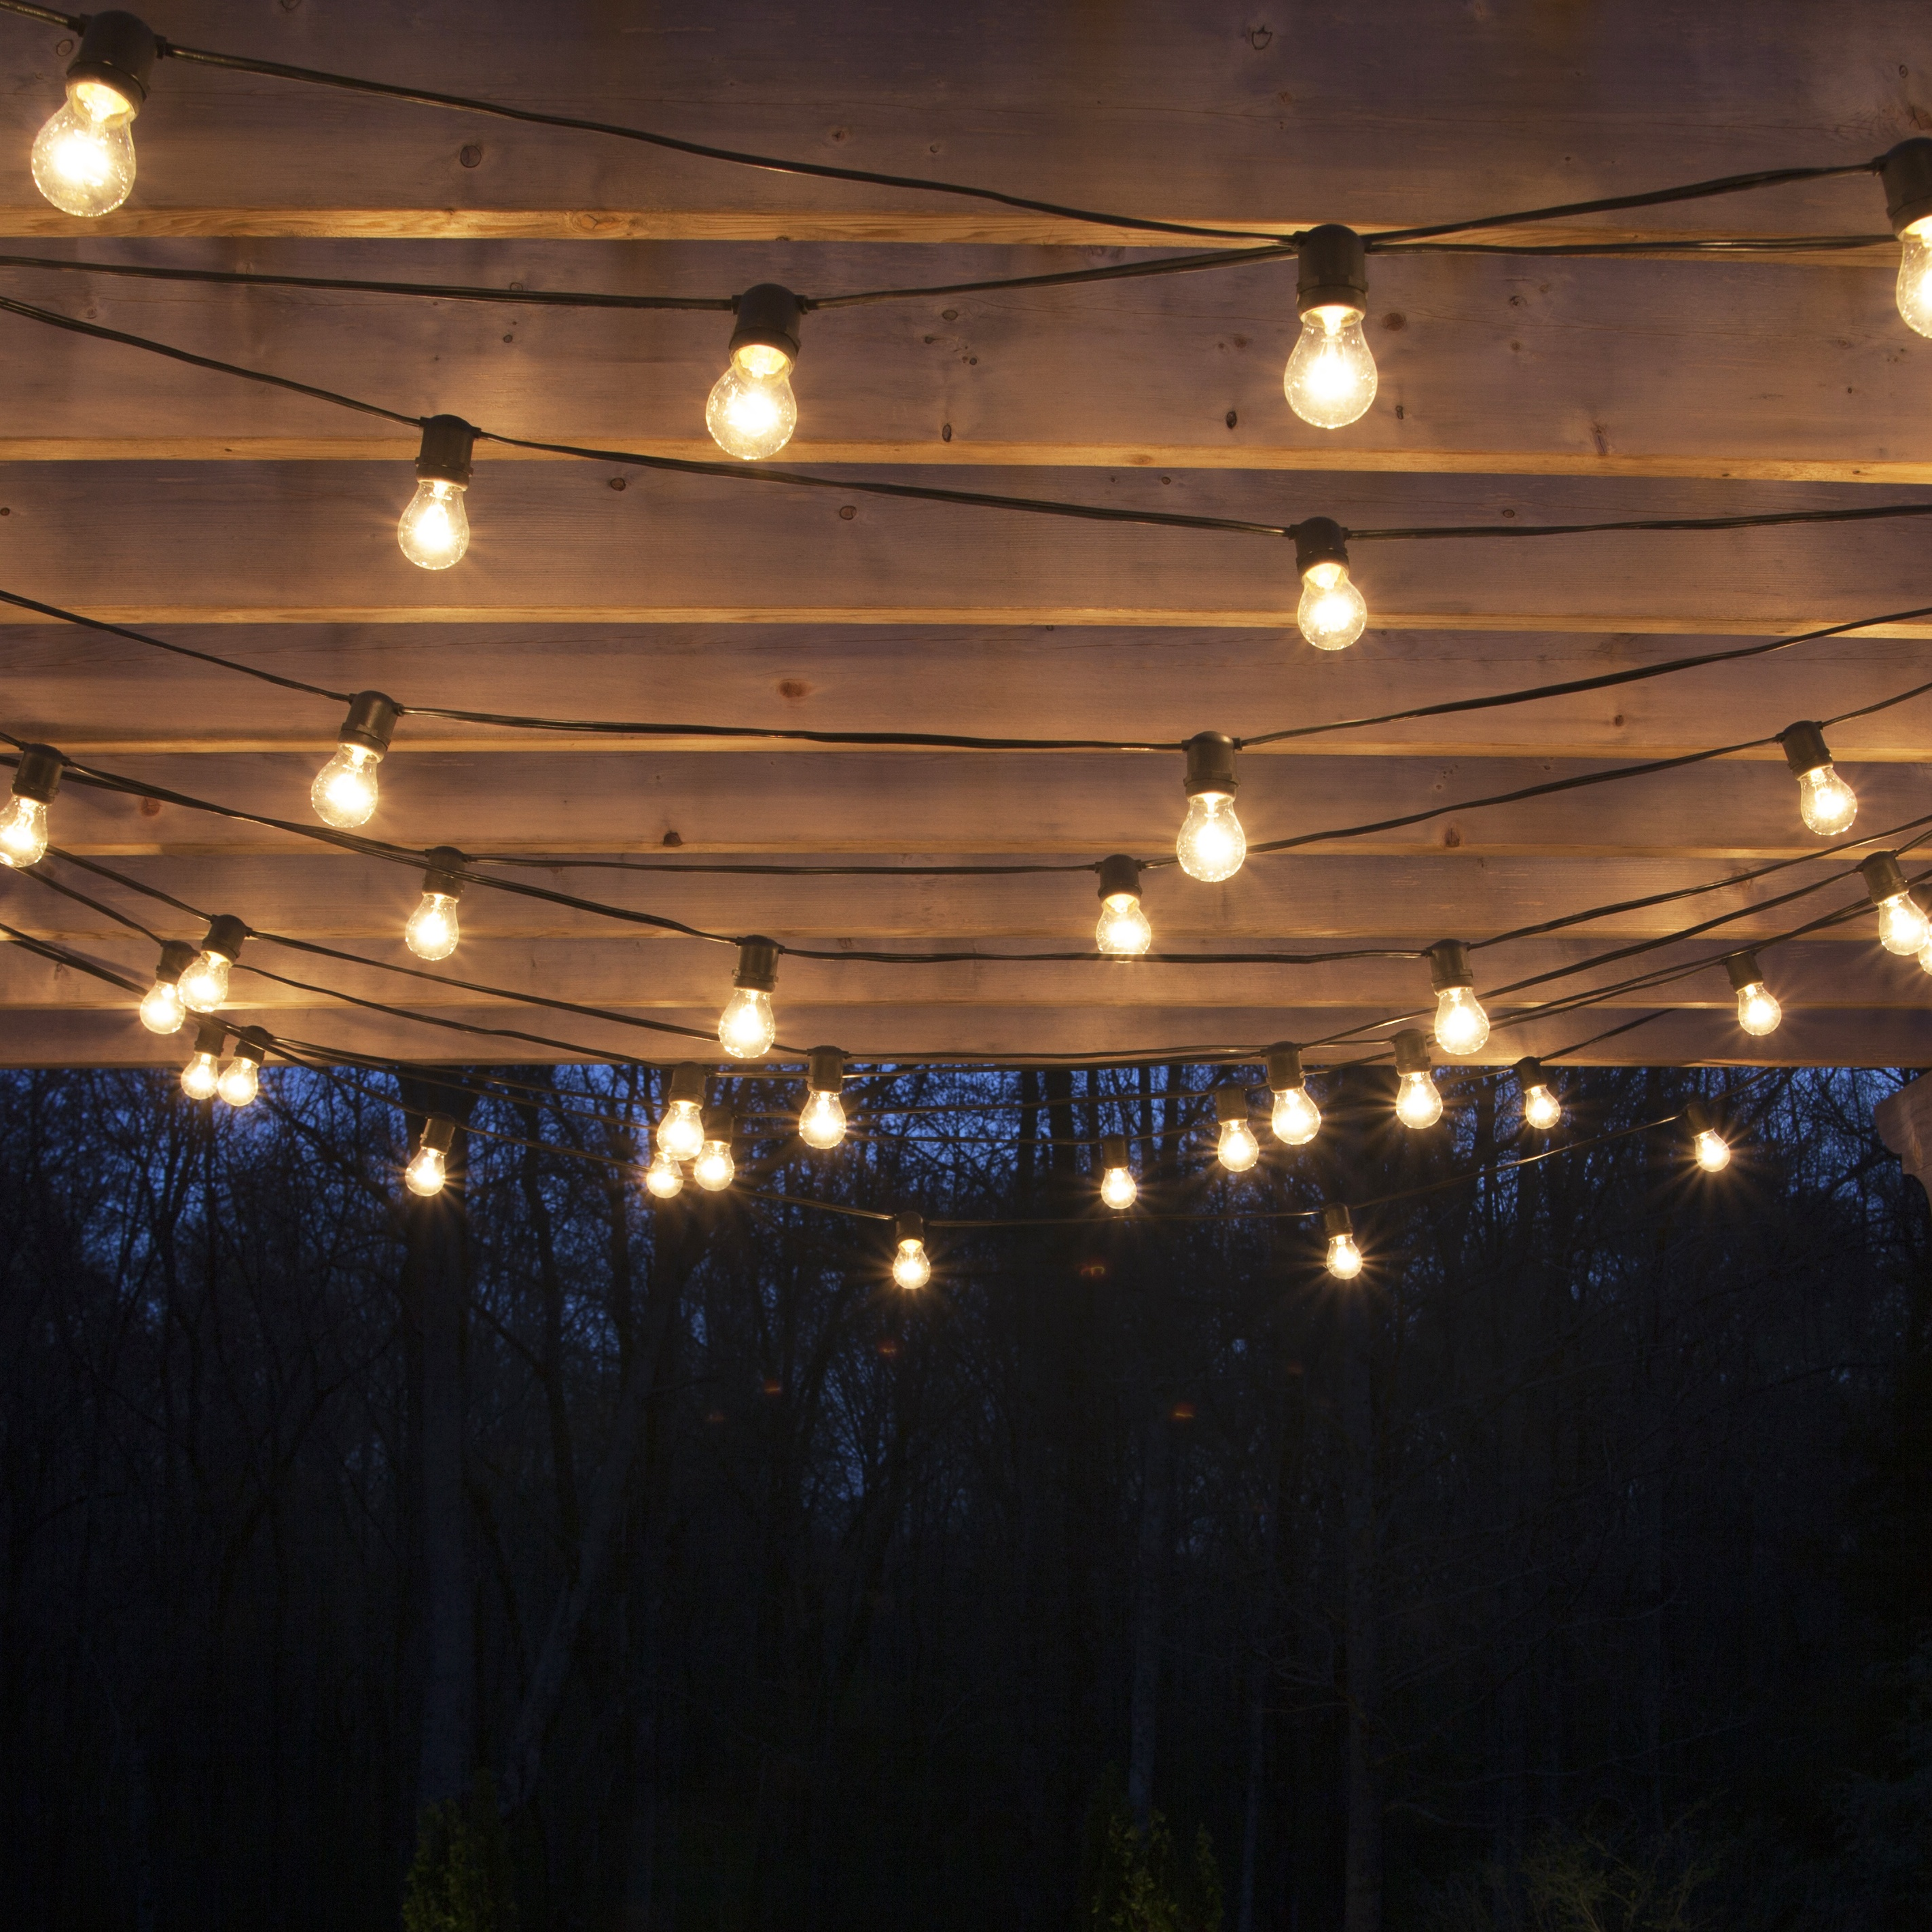 How To String Lights On A Christmas Tree Pinterest : How to Hang Patio Lights